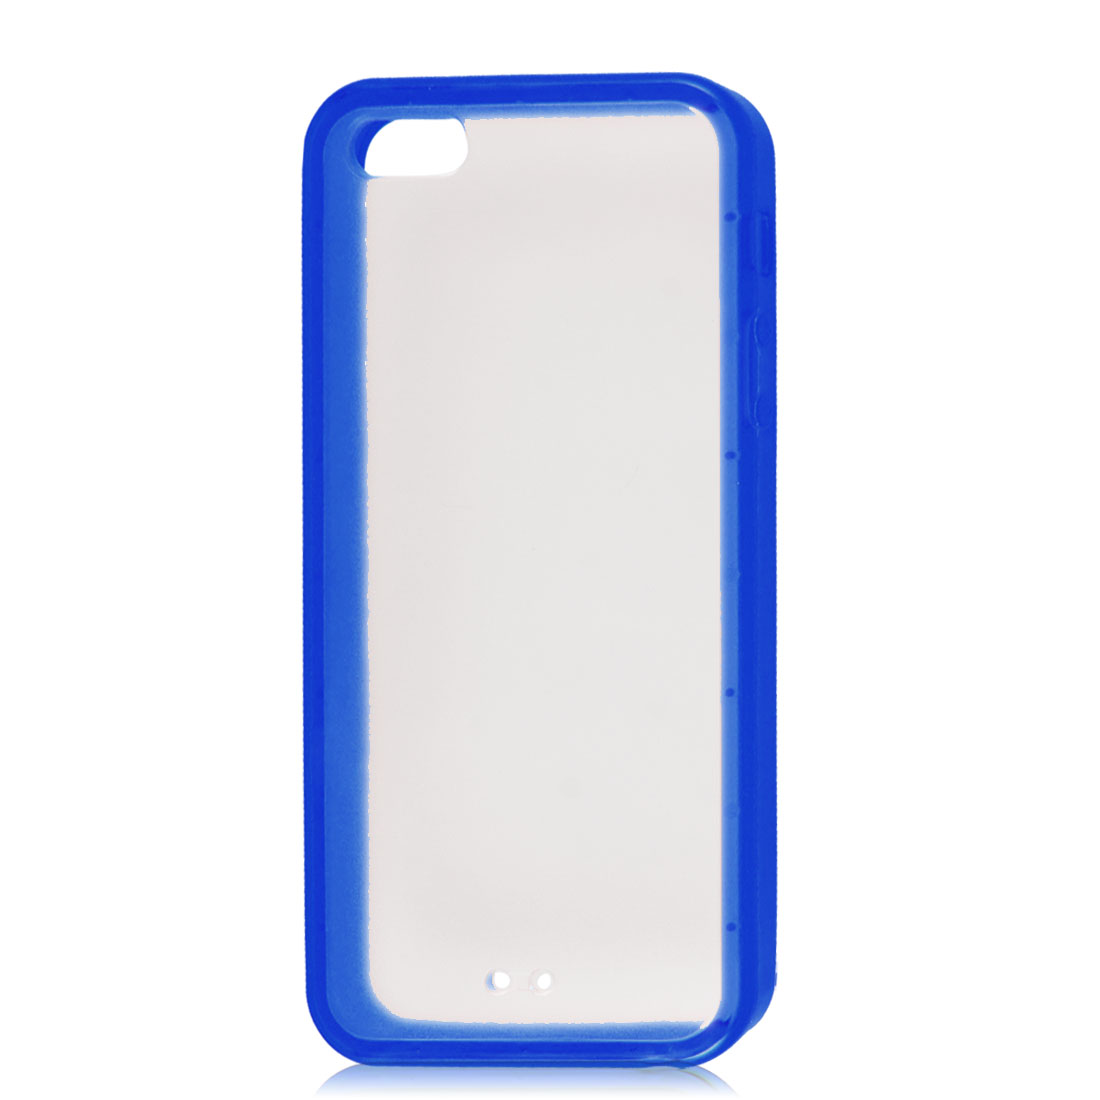 Blue Soft Trim Clear Hard Back Plastic Protective Case Cover for iPhone 5 5G